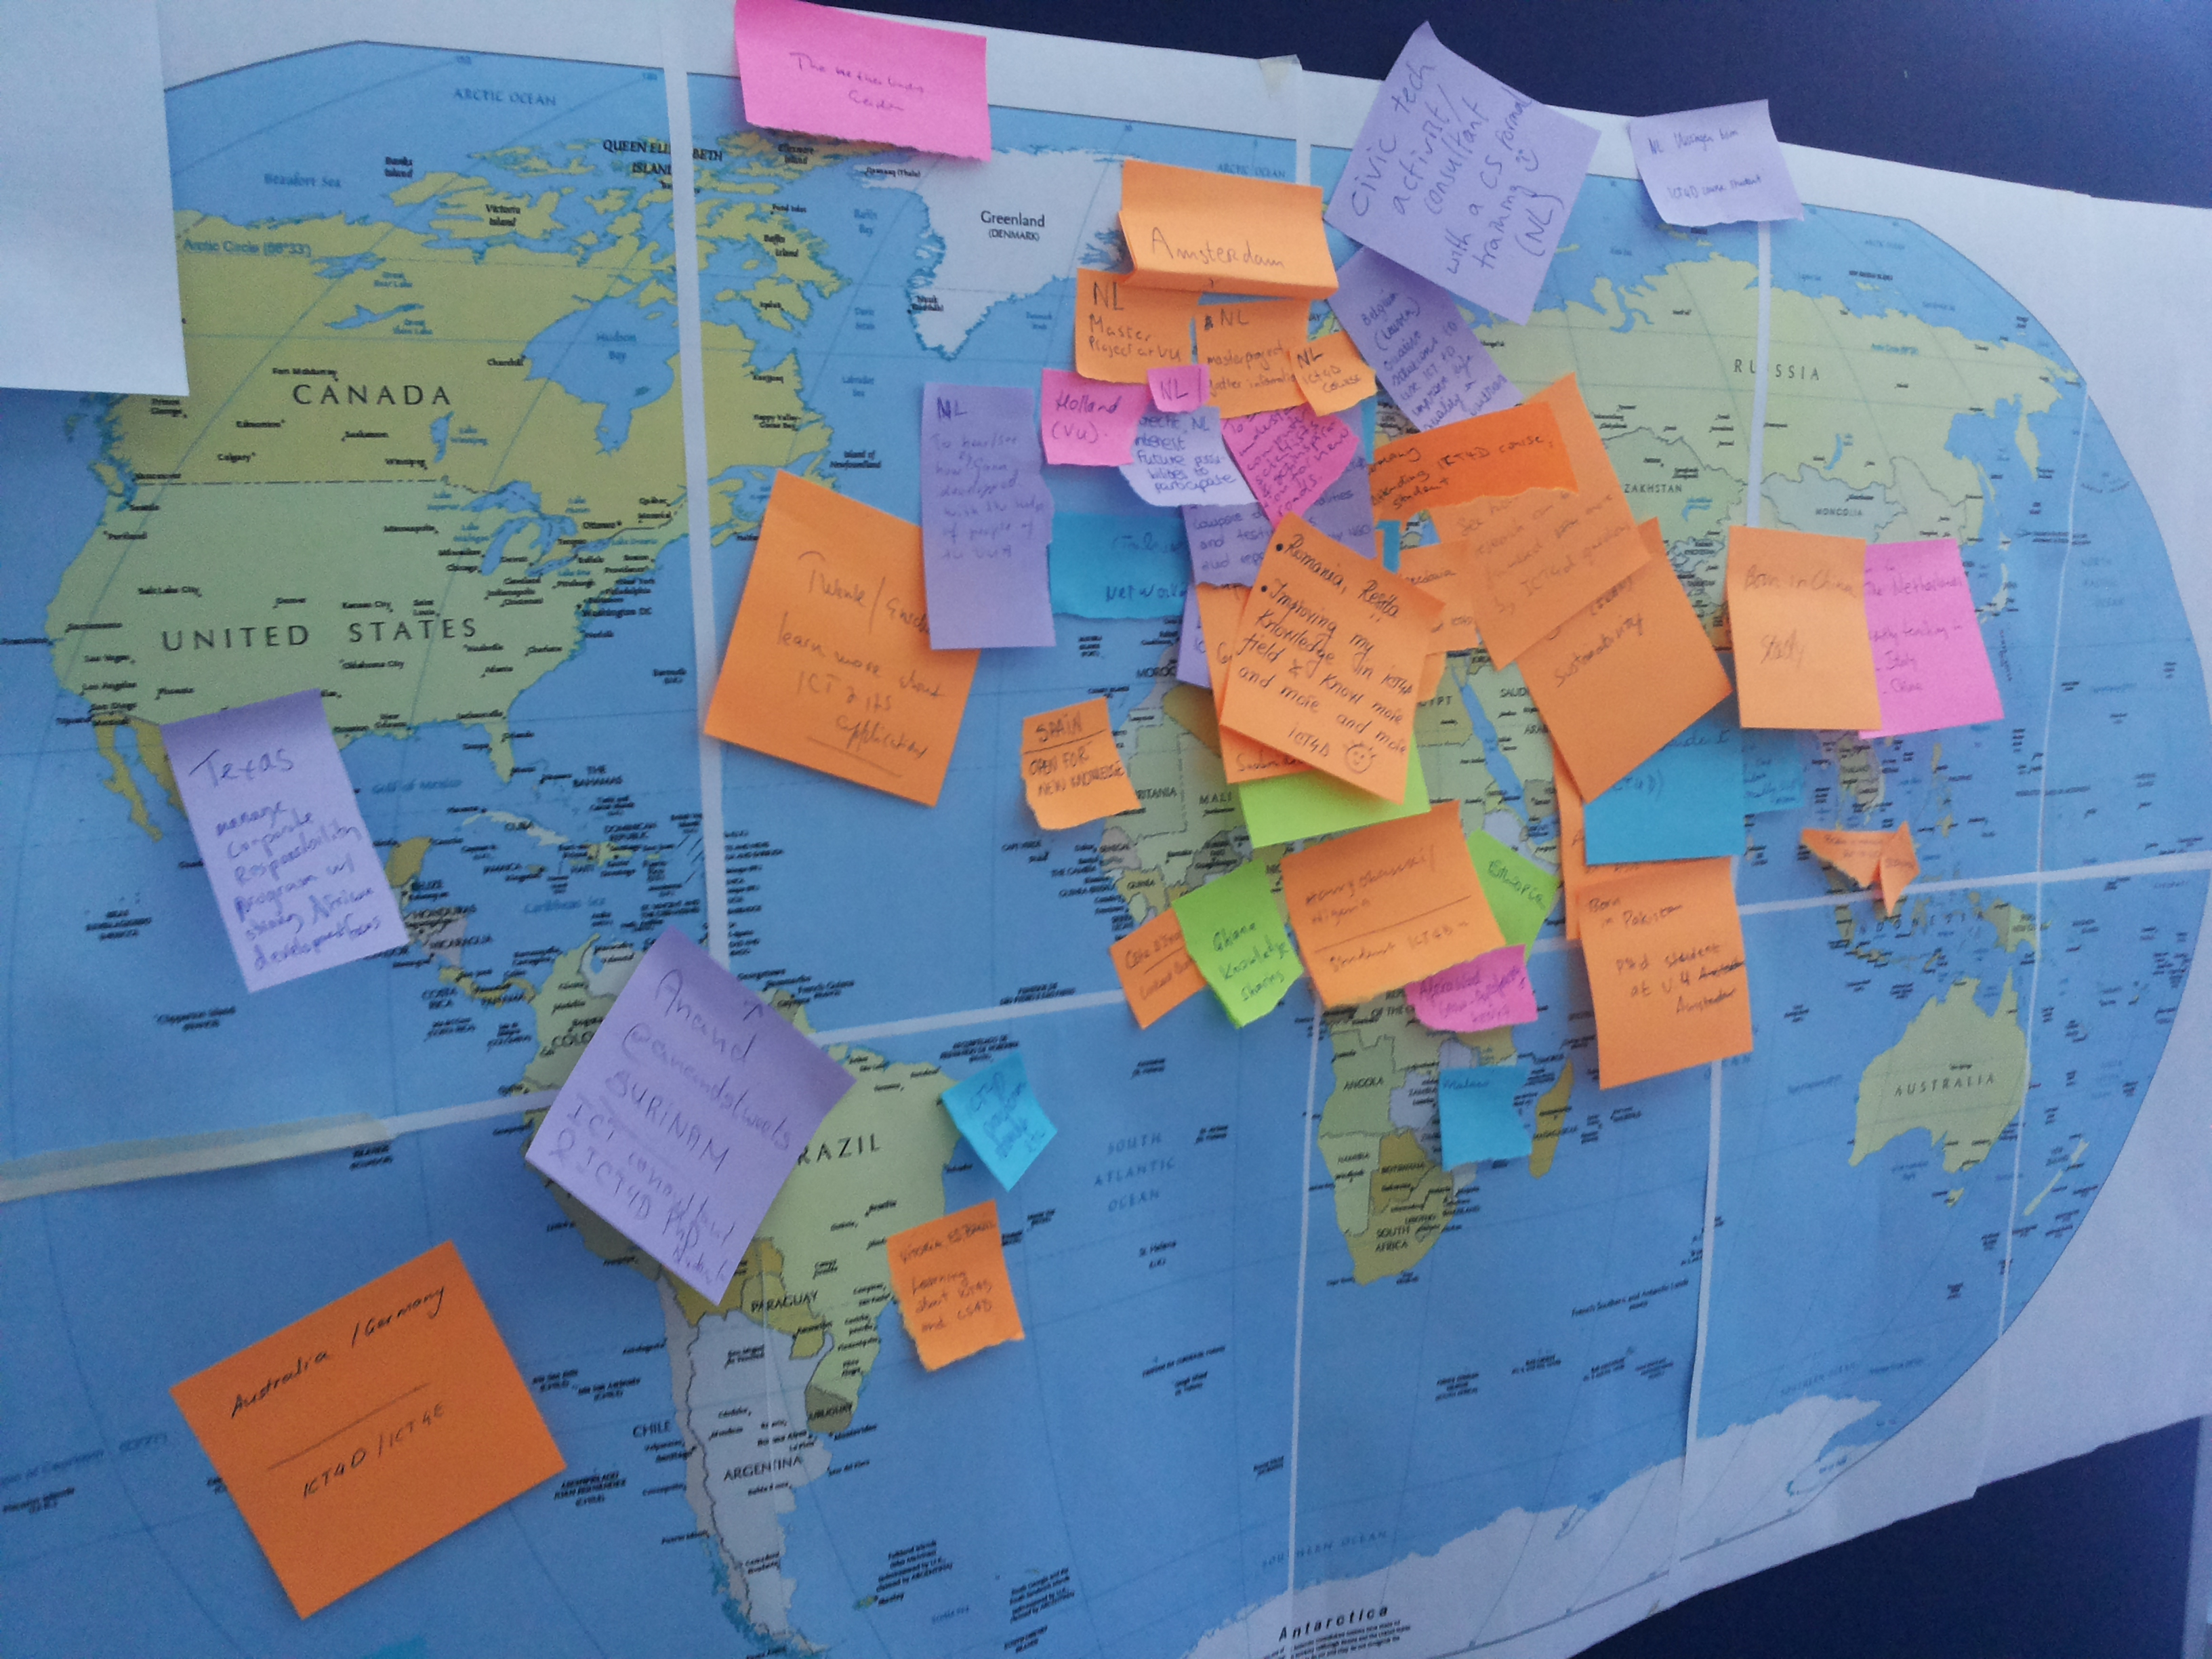 The board shows the location of origin of the participants. There are five color post-its indicating the background (orange = computer scientist, pink = social scientists, blue =ict4d practitioners, green=development practitioners and purple = other). The results show a wide geographical spread of participants.